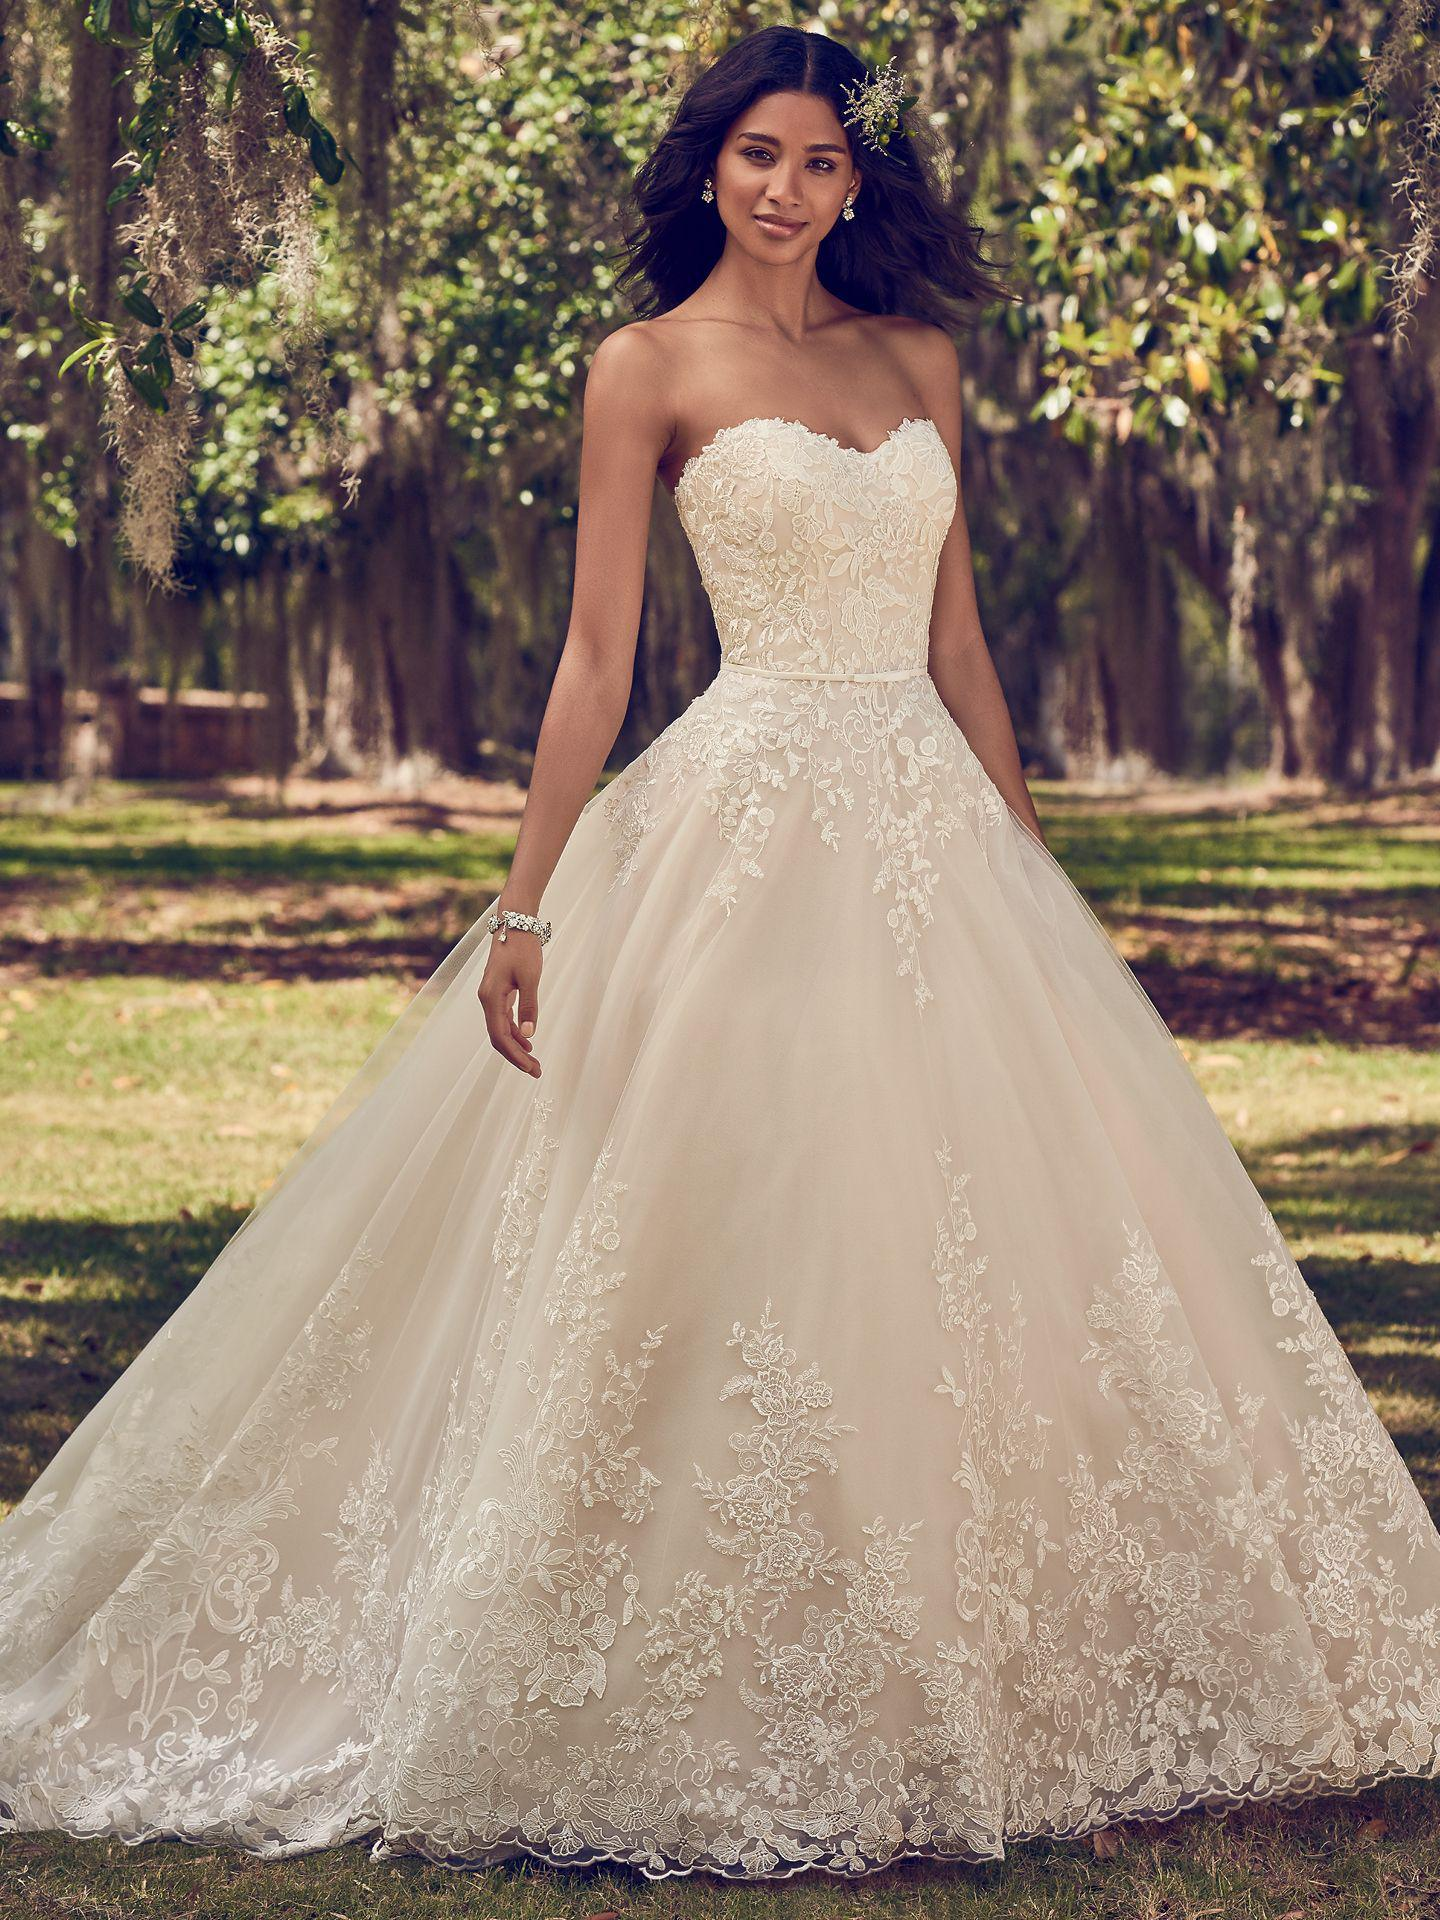 Maggie Sottero - VIOLA, All Ivory, PlusSize:44